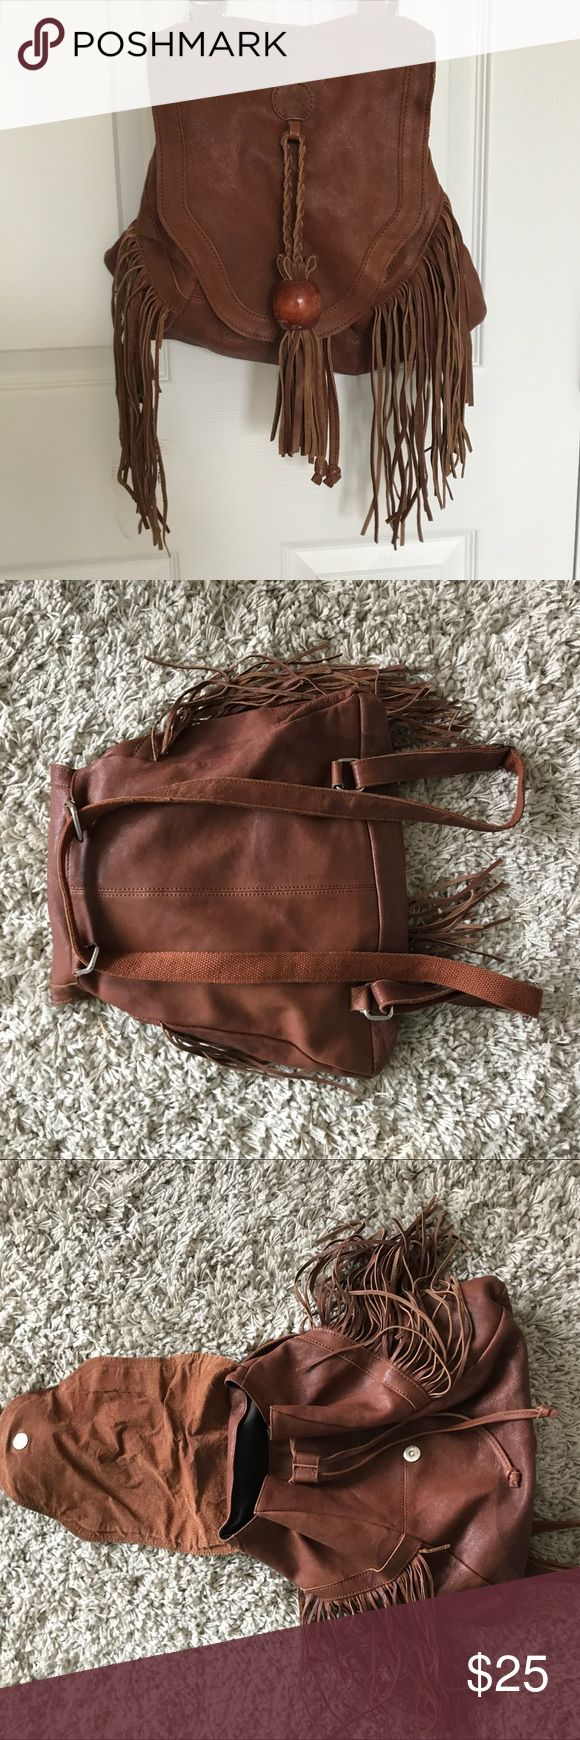 Brown Leather Backpack Brown, fake leather backpack from Urban Outfitters. There is a water mark on the bottom/back but still in good condition. Urban Outfitters Bags Backpacks